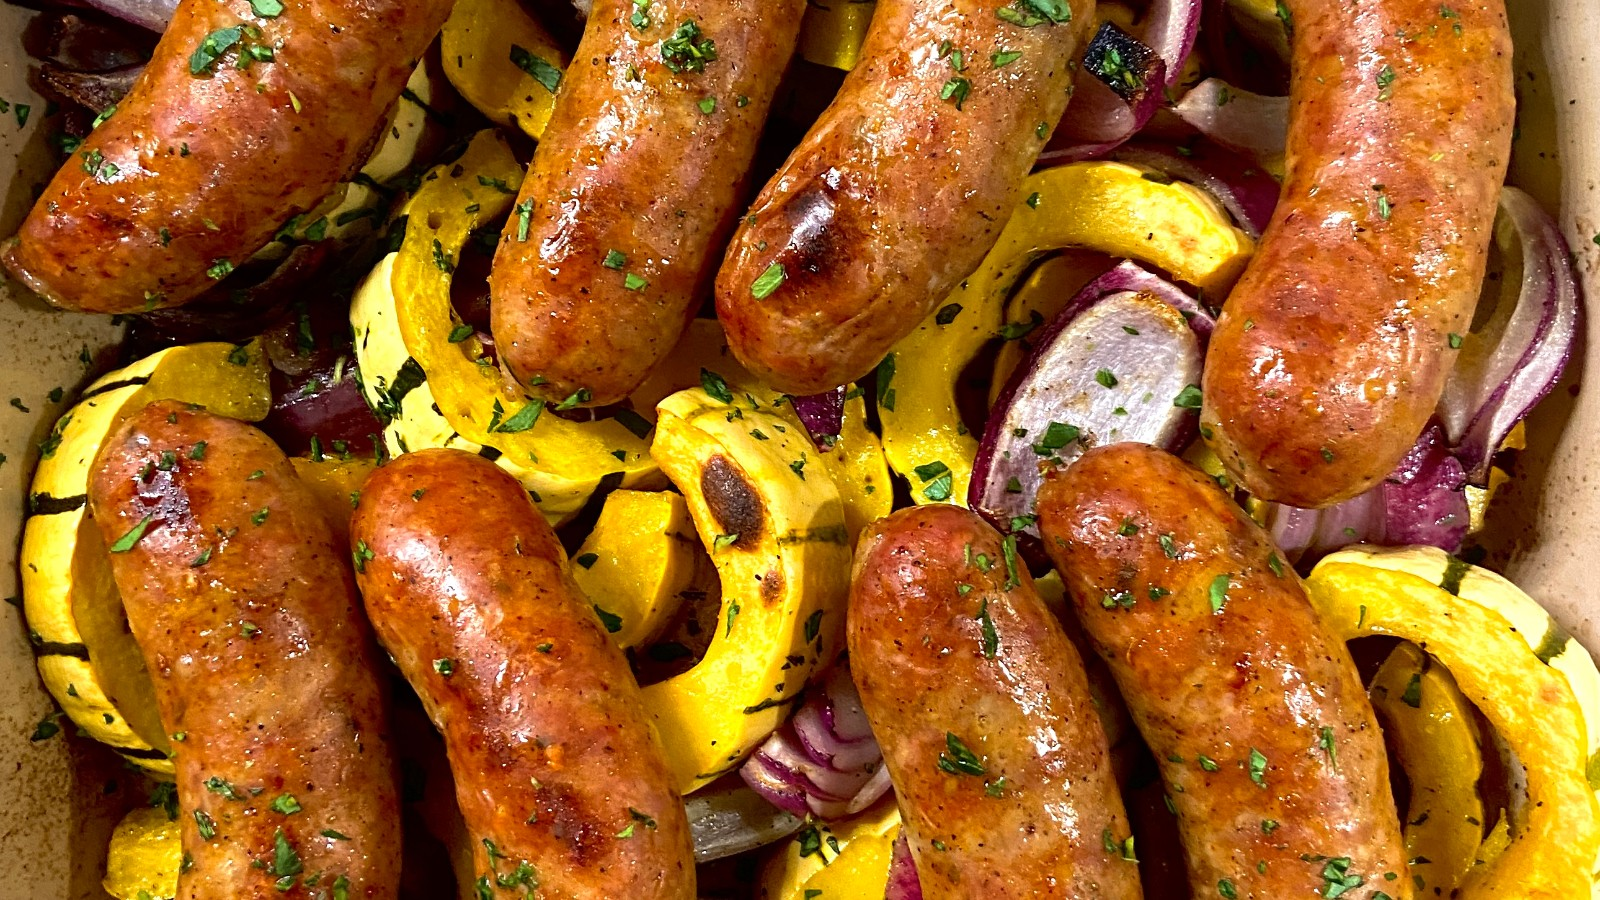 Image of Roasted Delicata Squash and Sausage